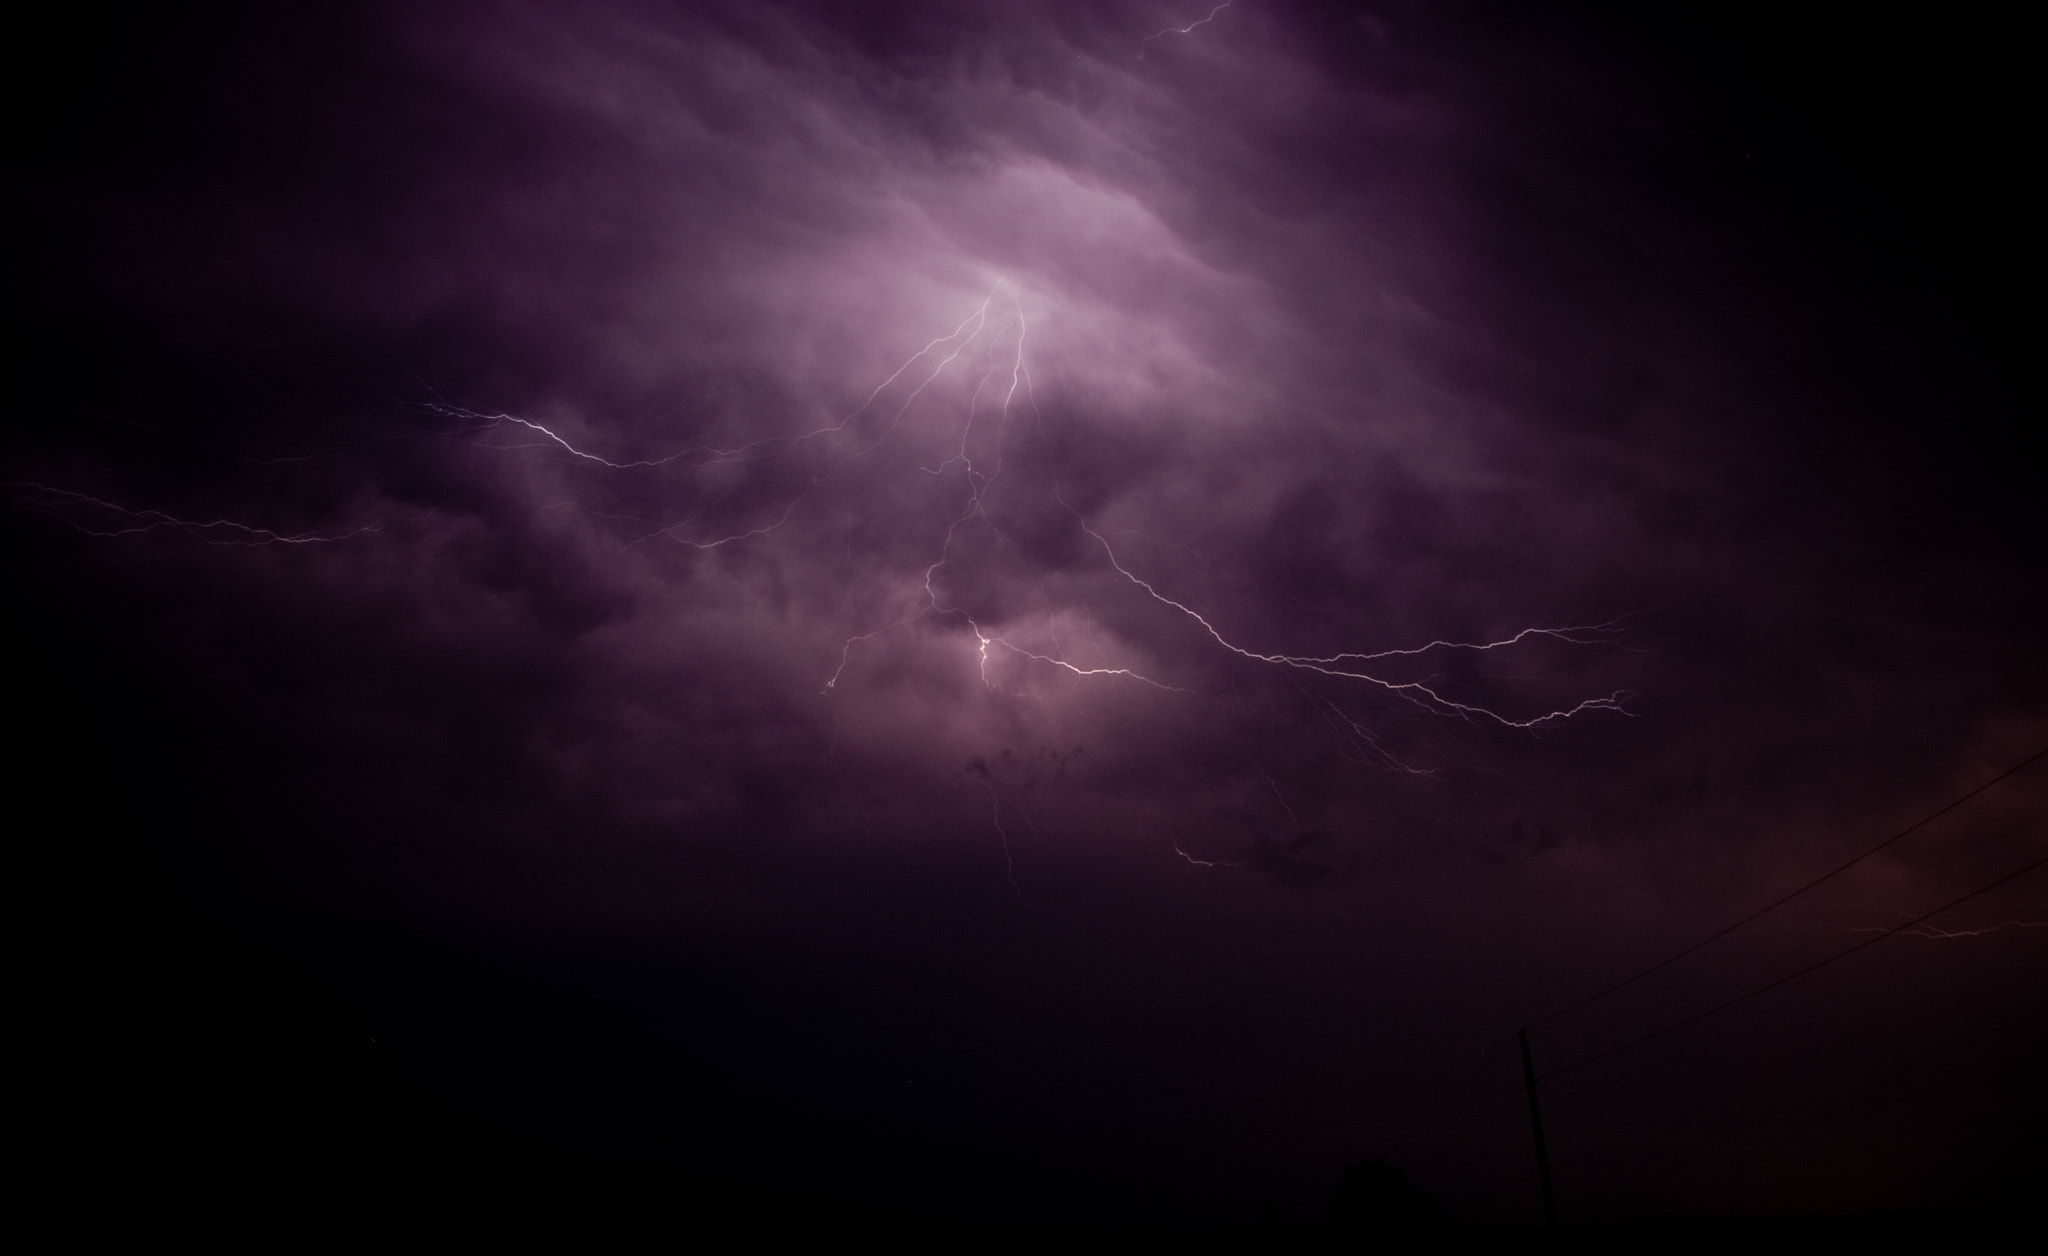 Photograph Lightning Through the Clouds  by Brad Denny on 500px